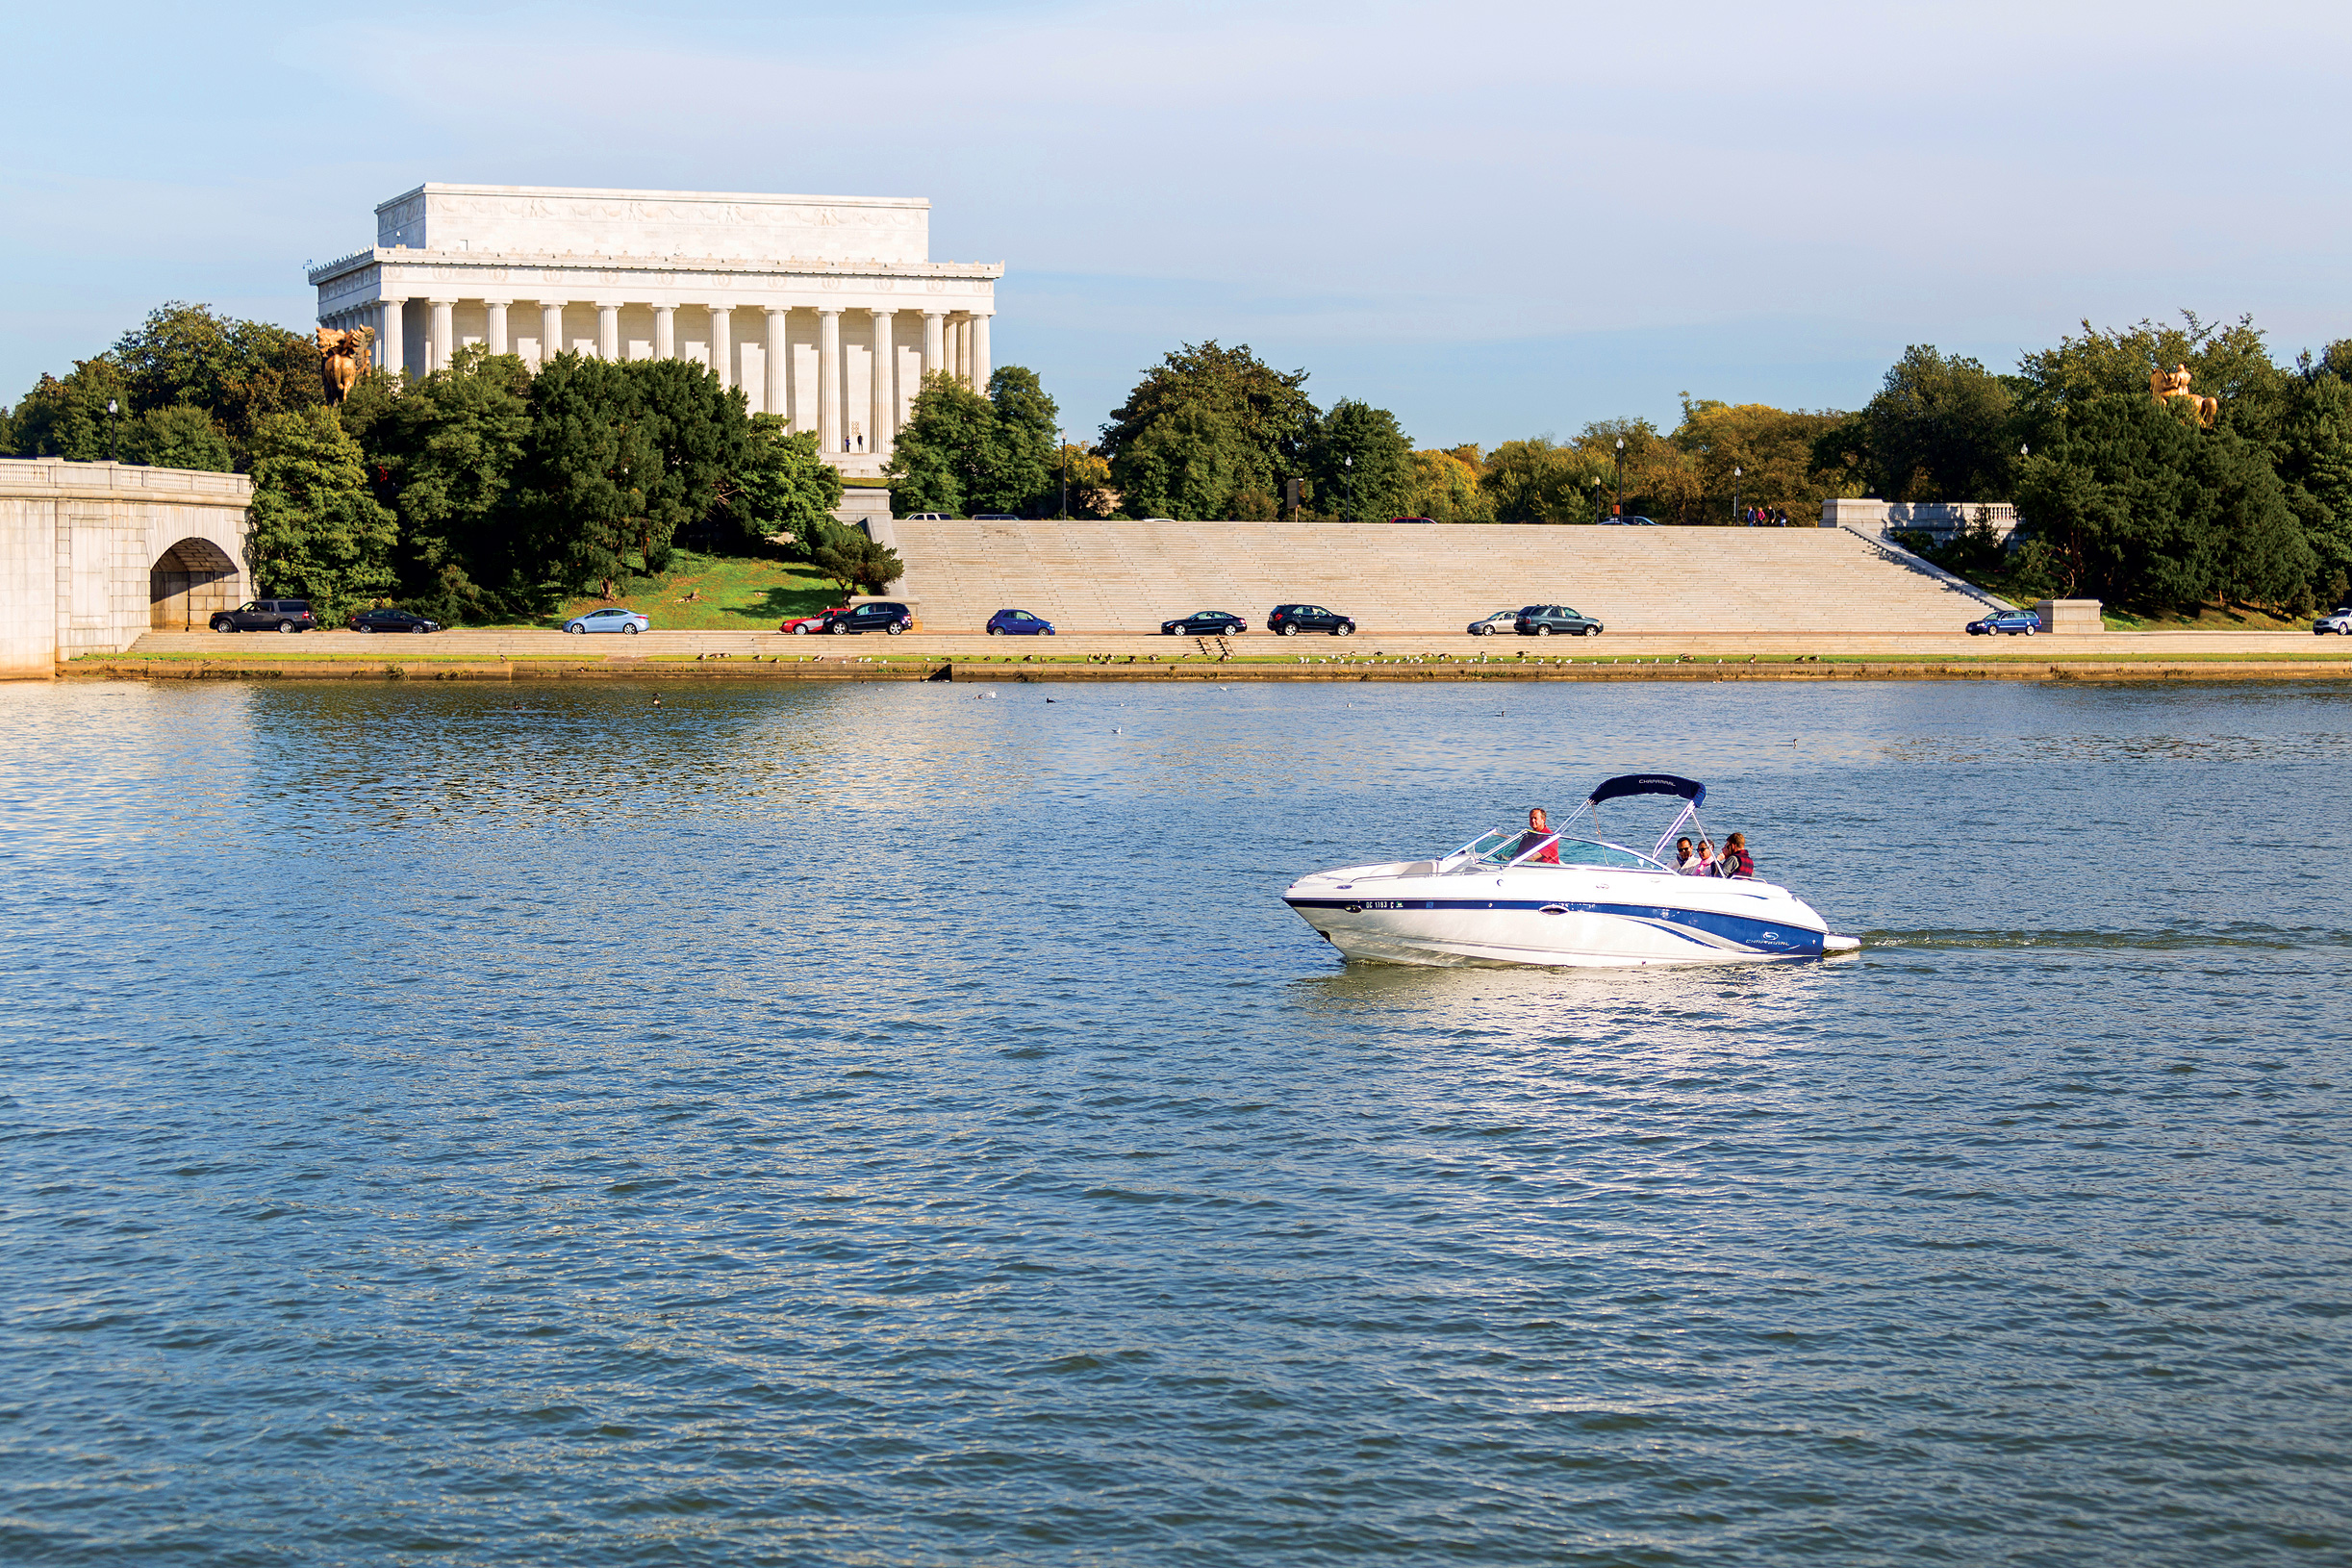 Idling-by-the-Lincoln-Memorial.jpg